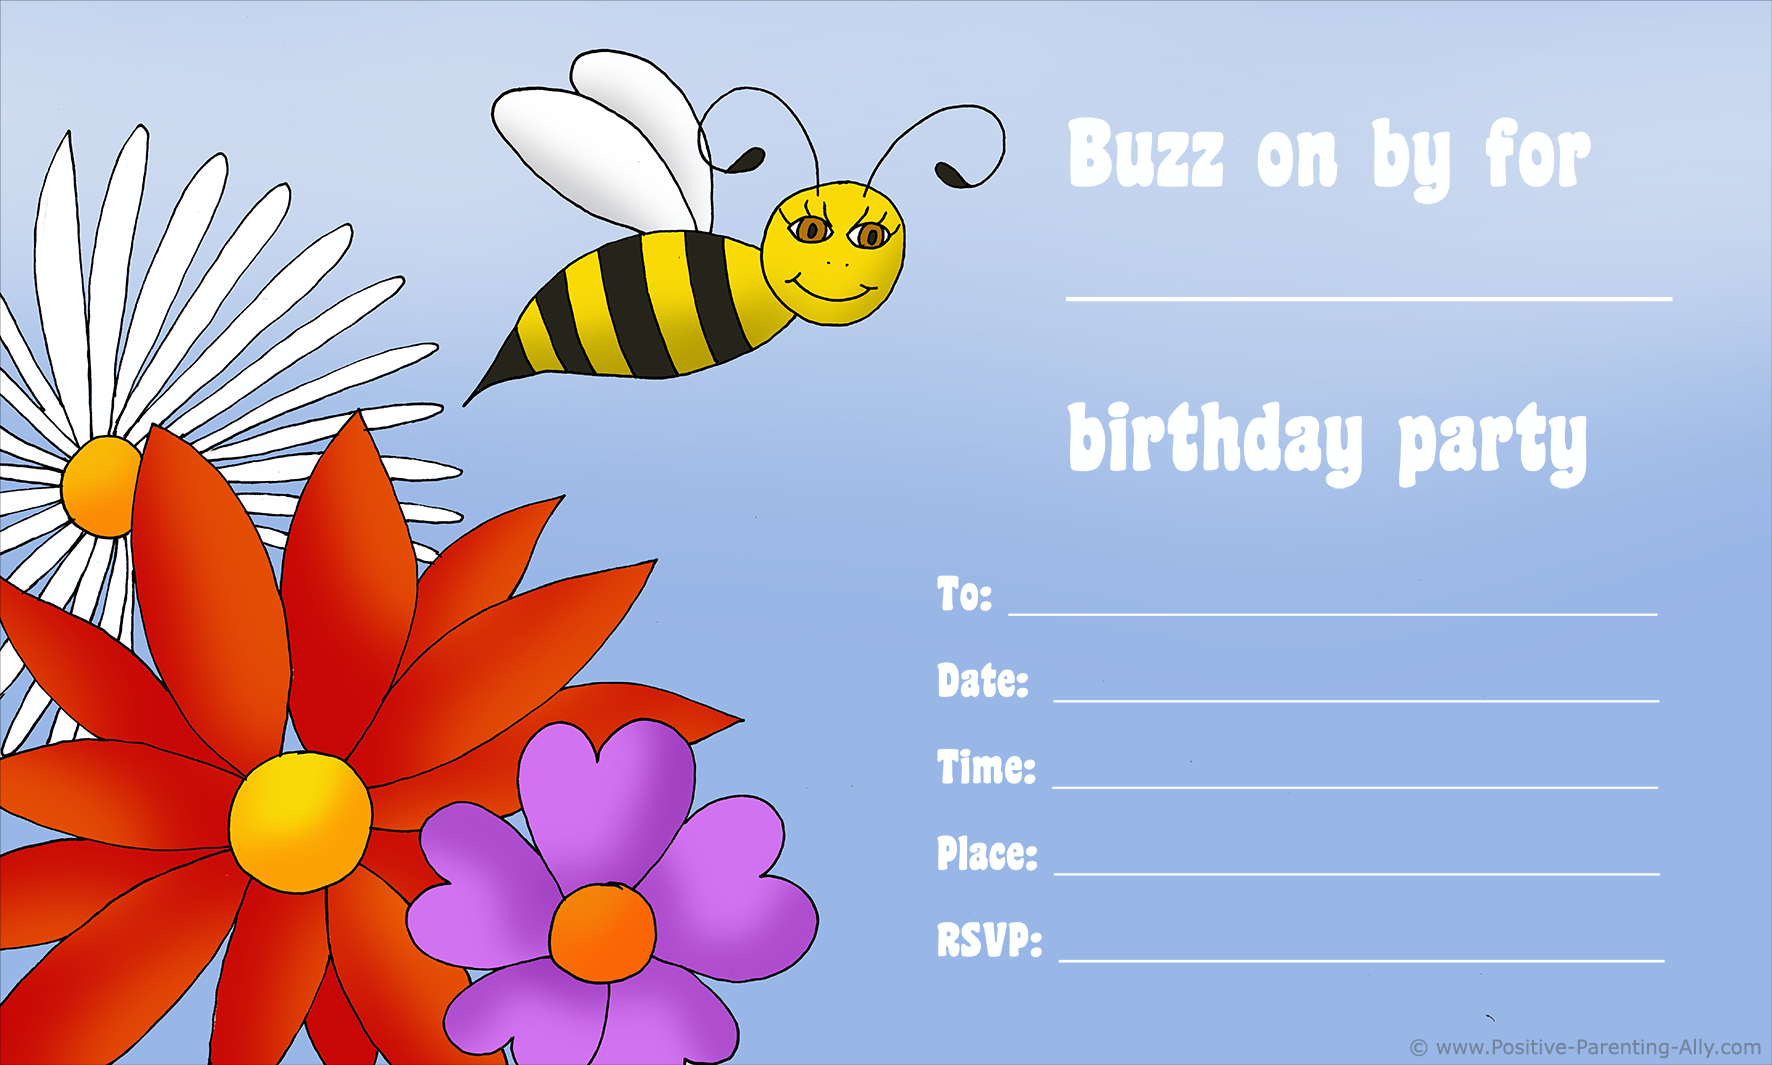 Free kids birthday invitations: Flowers and bees as kids birthday theme for invites.